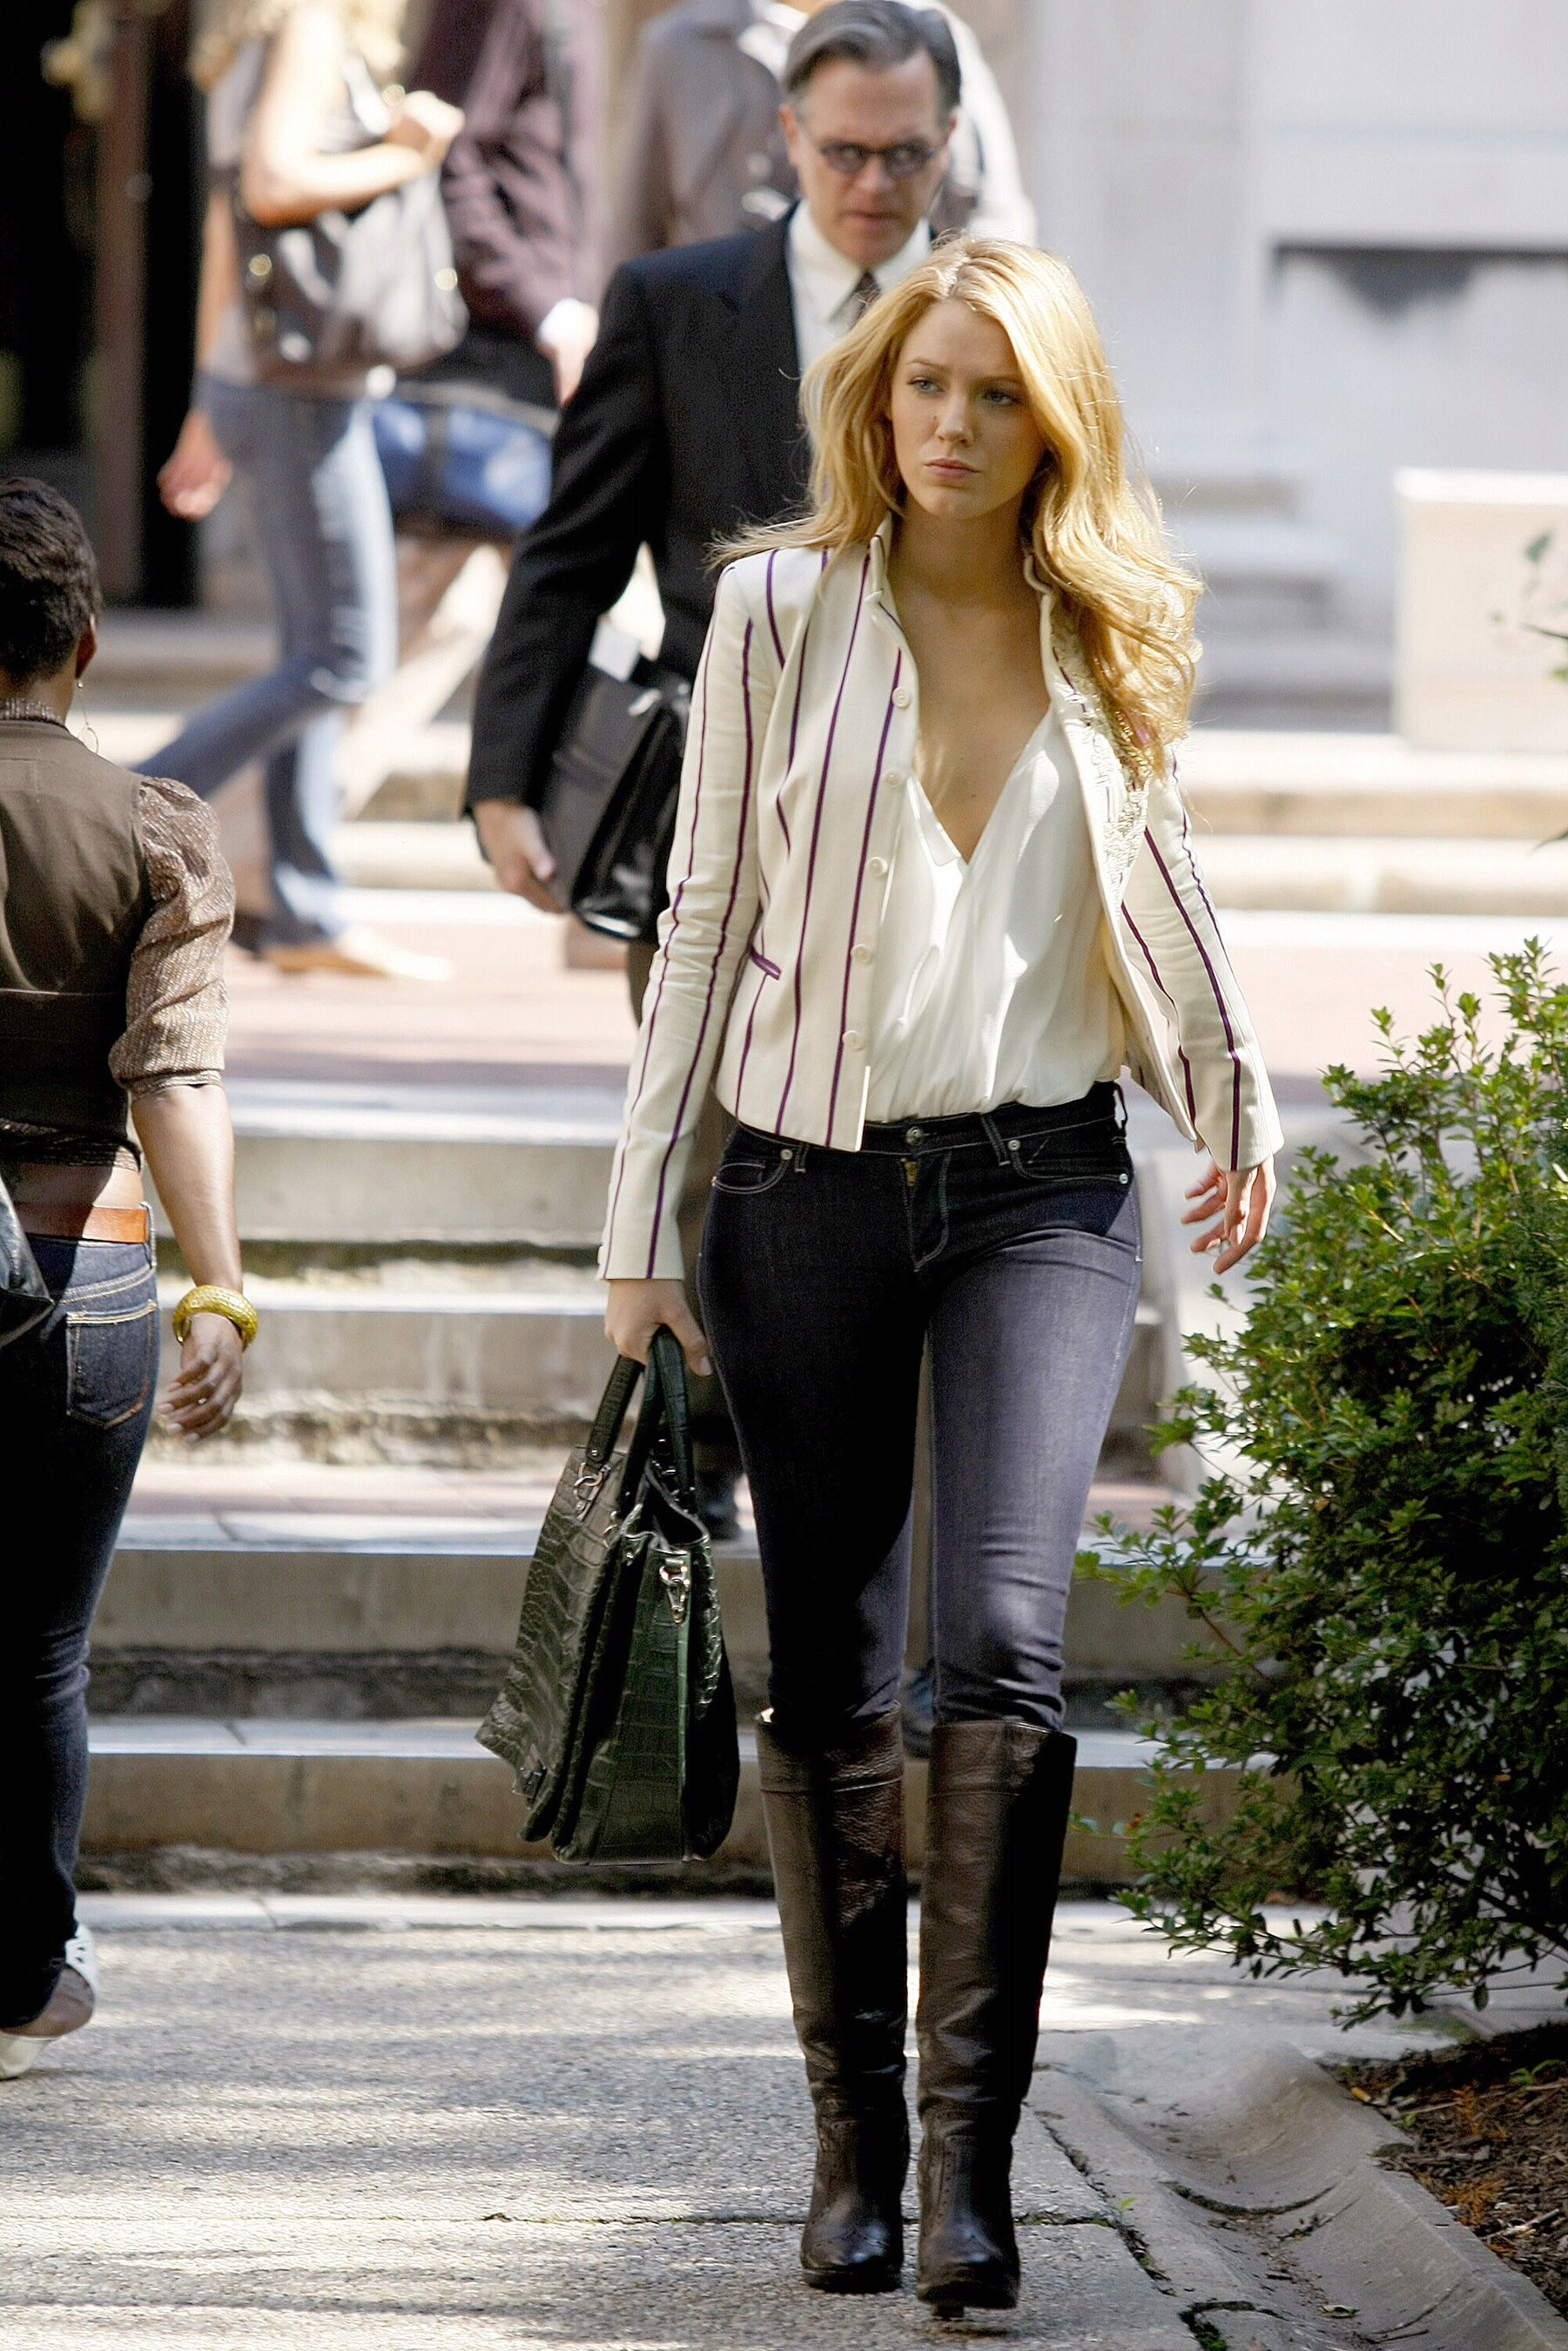 serena van der woodsen dating professor Gossip girl begins with teen socialite serena van der woodsen's return after and gg, but it's the teacher/student relationships that really raise eyebrows ezra found a new job so that he could date aria, but they still faced.